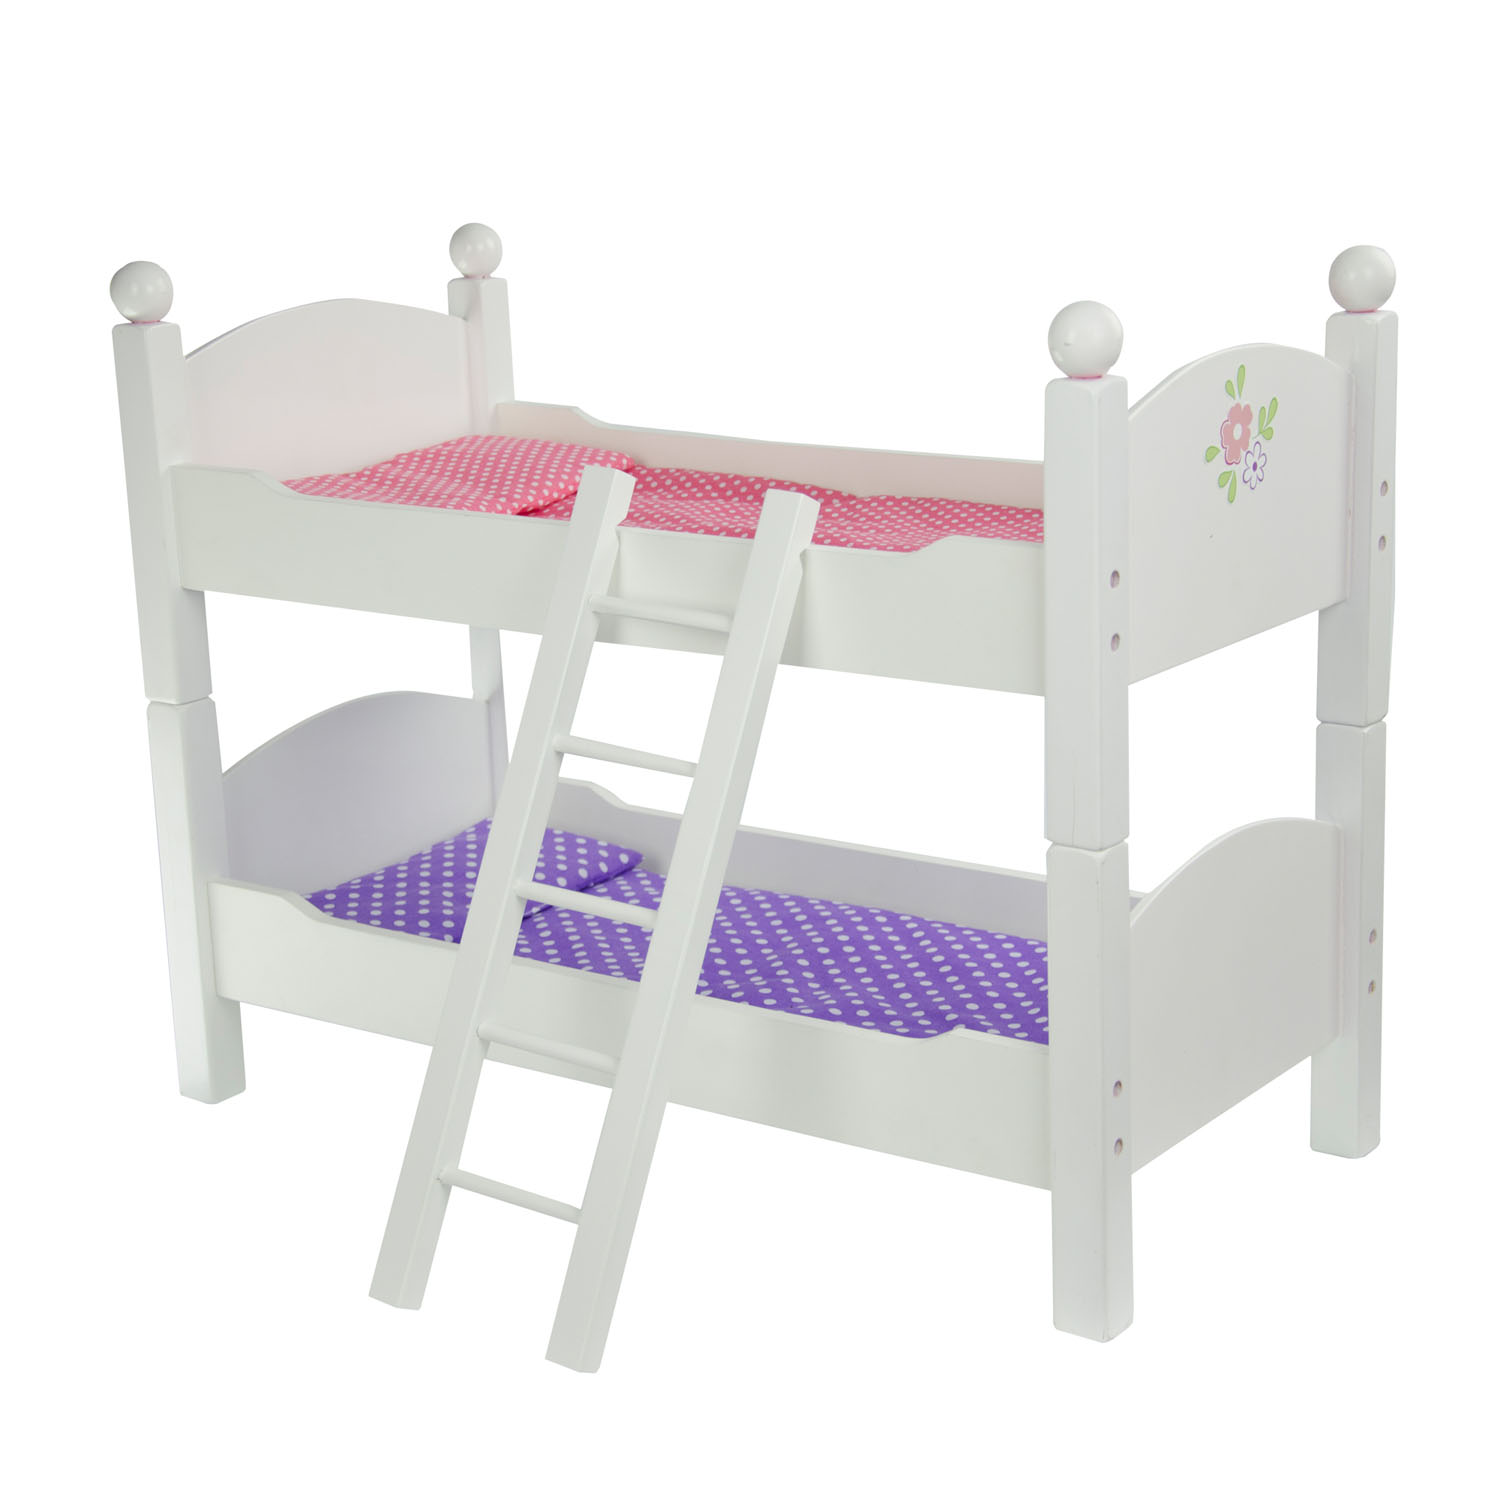 "Olivia's Little World Little Princess 18"" Doll Furniture - Double Bunk Bed"